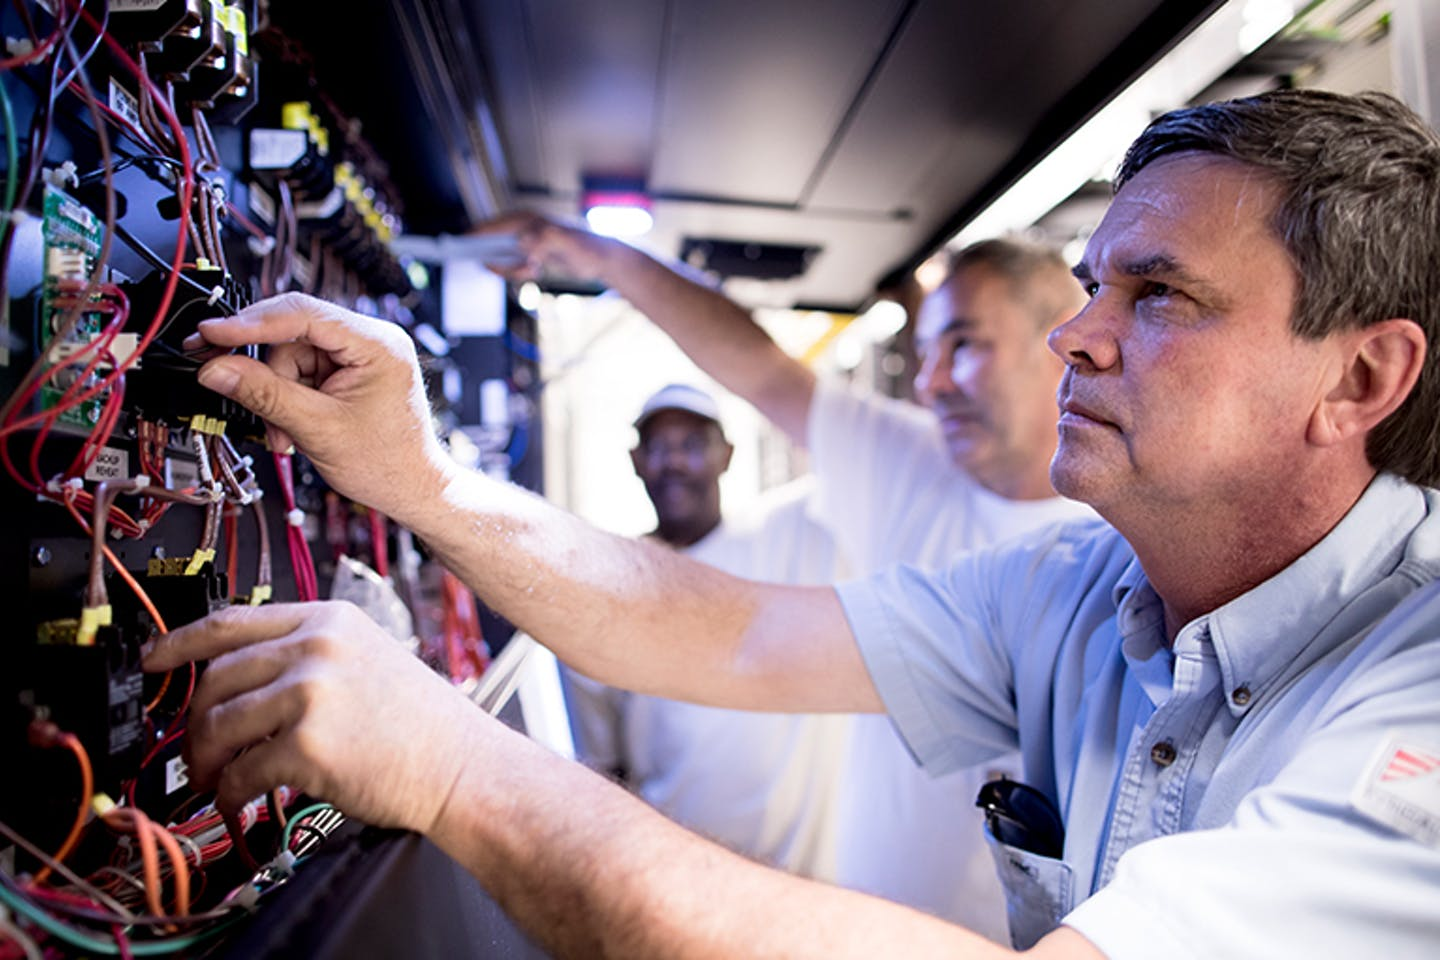 Mike Weaver, an EPB employees, works on a portion of the Smart Grid infrastructure to keep its functionality optimal.